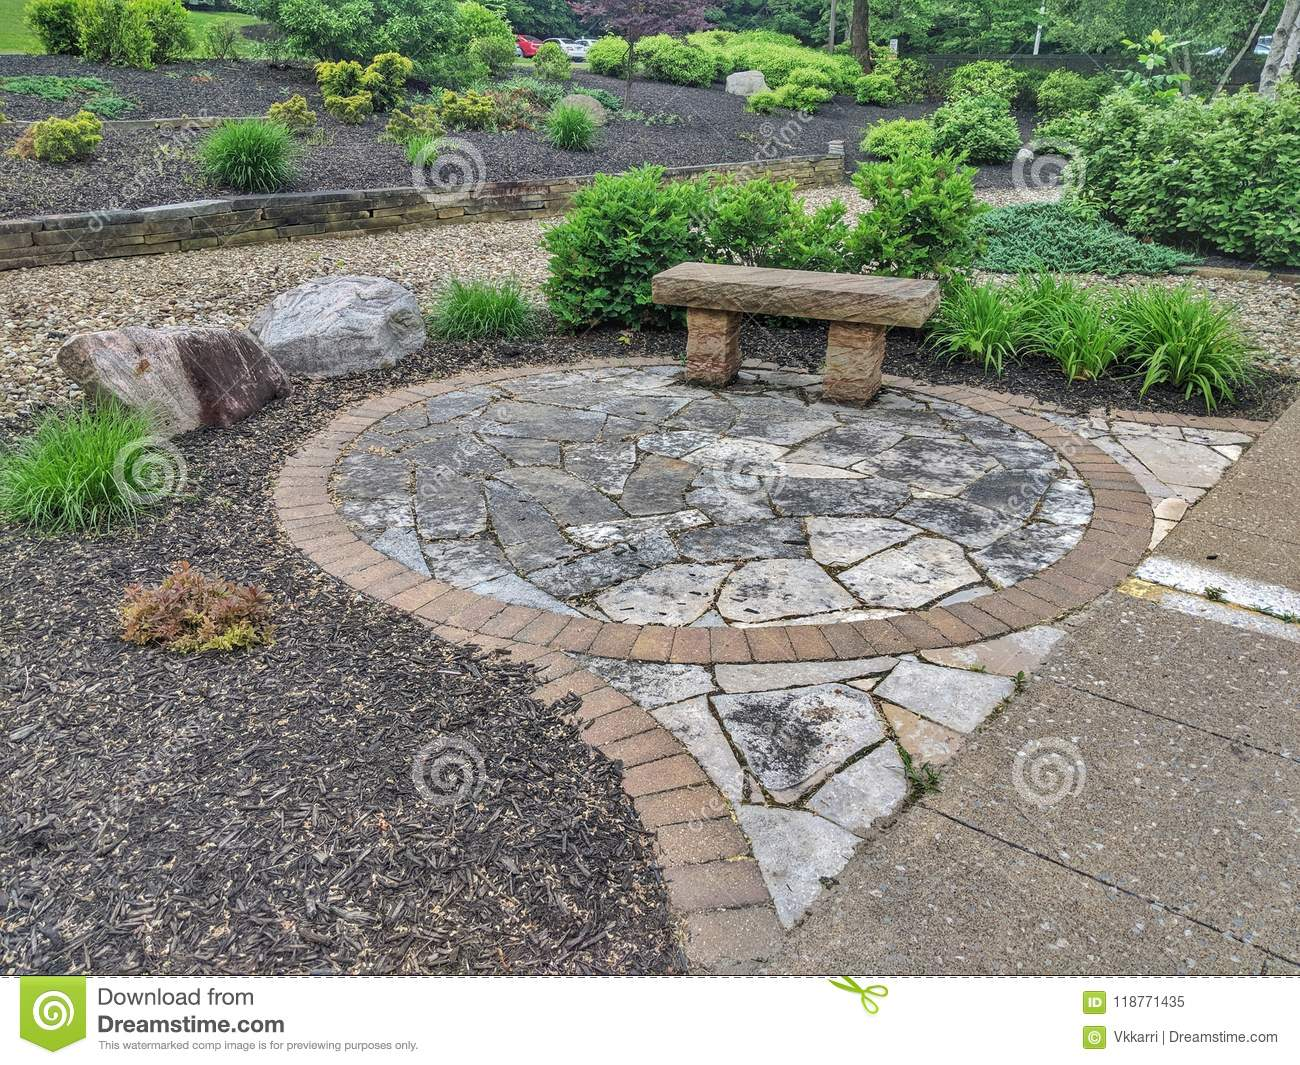 Rock Garden Design With Bench And Plants Stock Image - Image ... on english garden design plants, tropical garden design plants, japanese garden design plants,